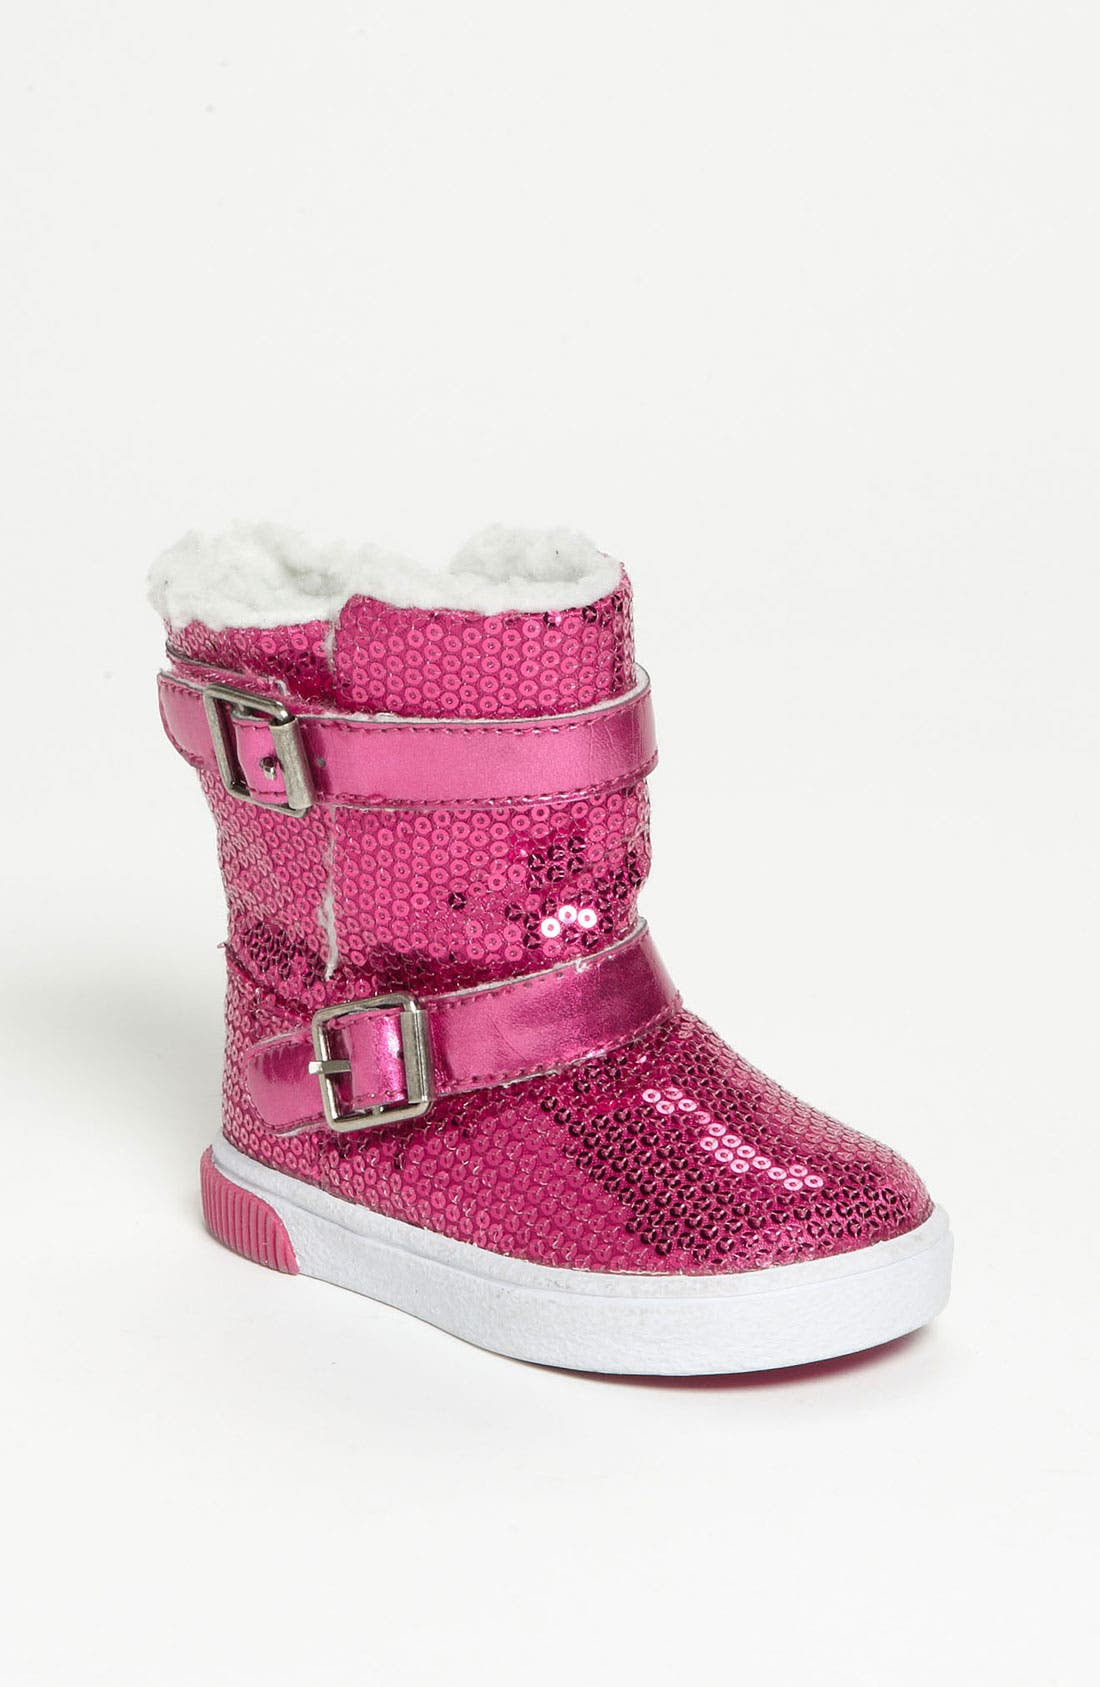 Alternate Image 1 Selected - Stride Rite 'Safi' Boot (Toddler)